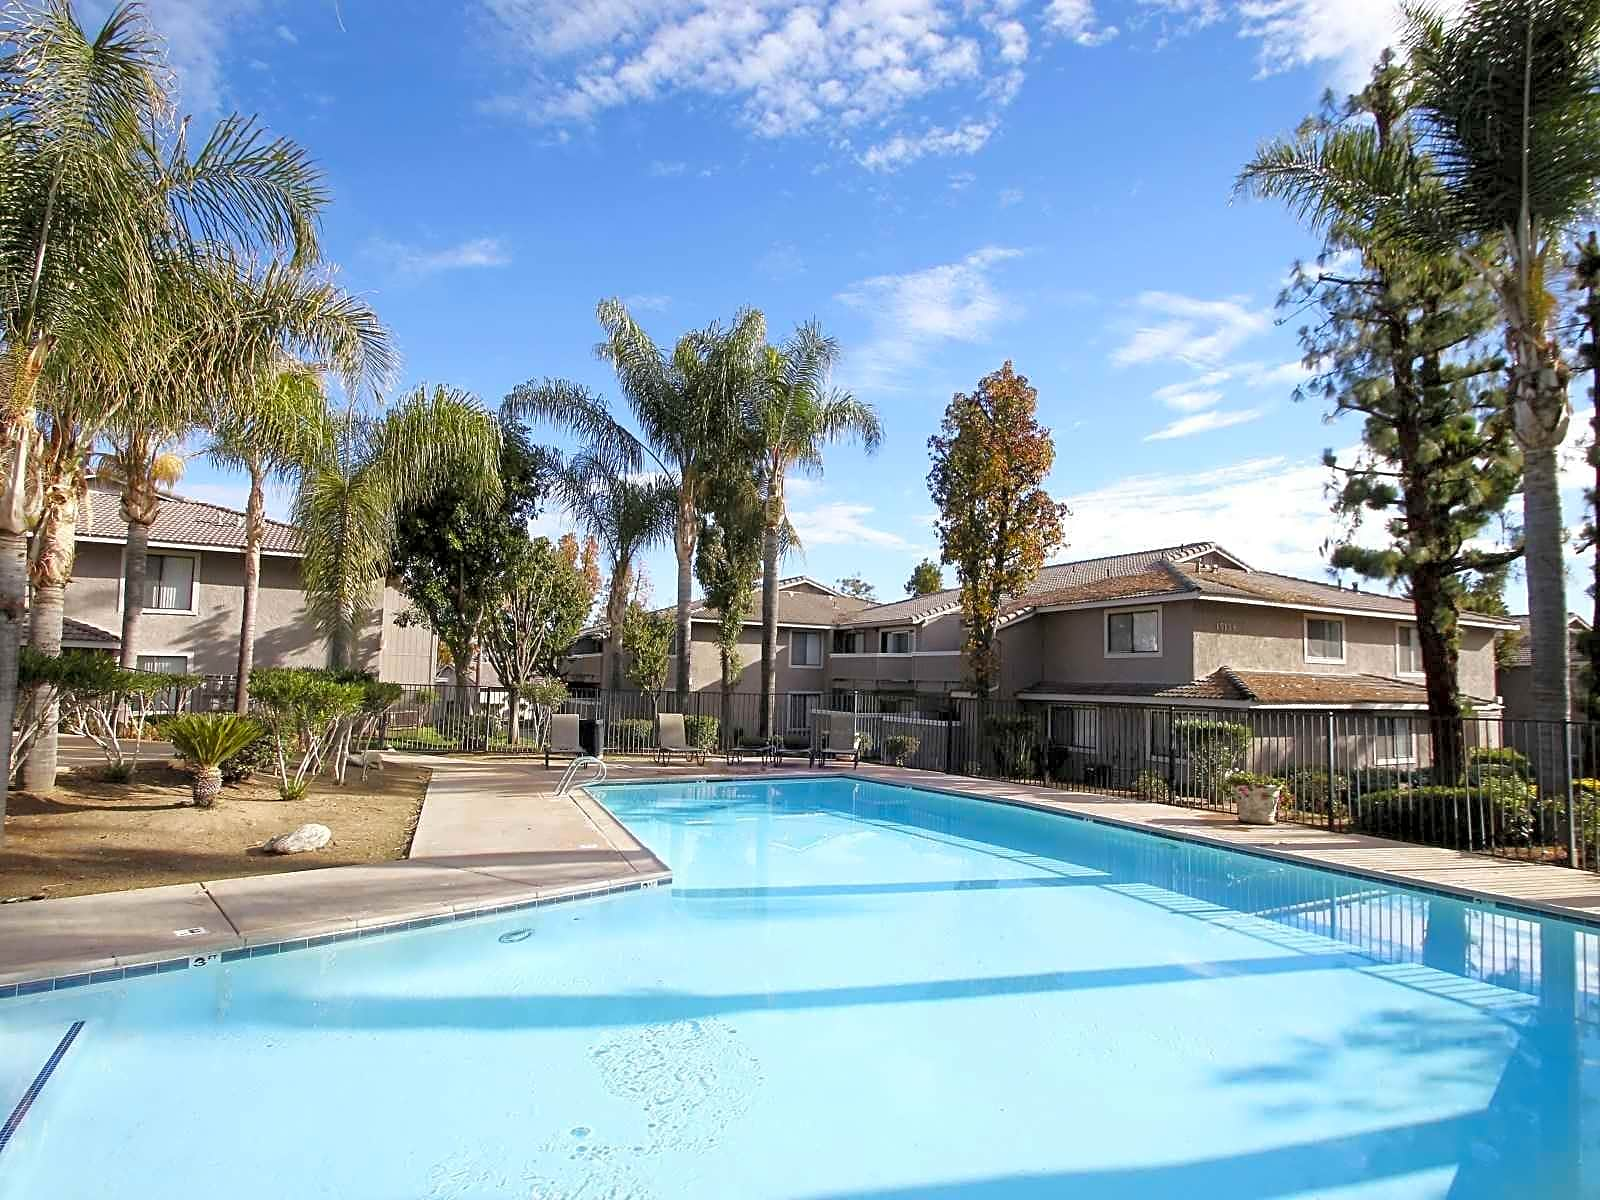 Canyon Hills Apartments Lake Elsinore